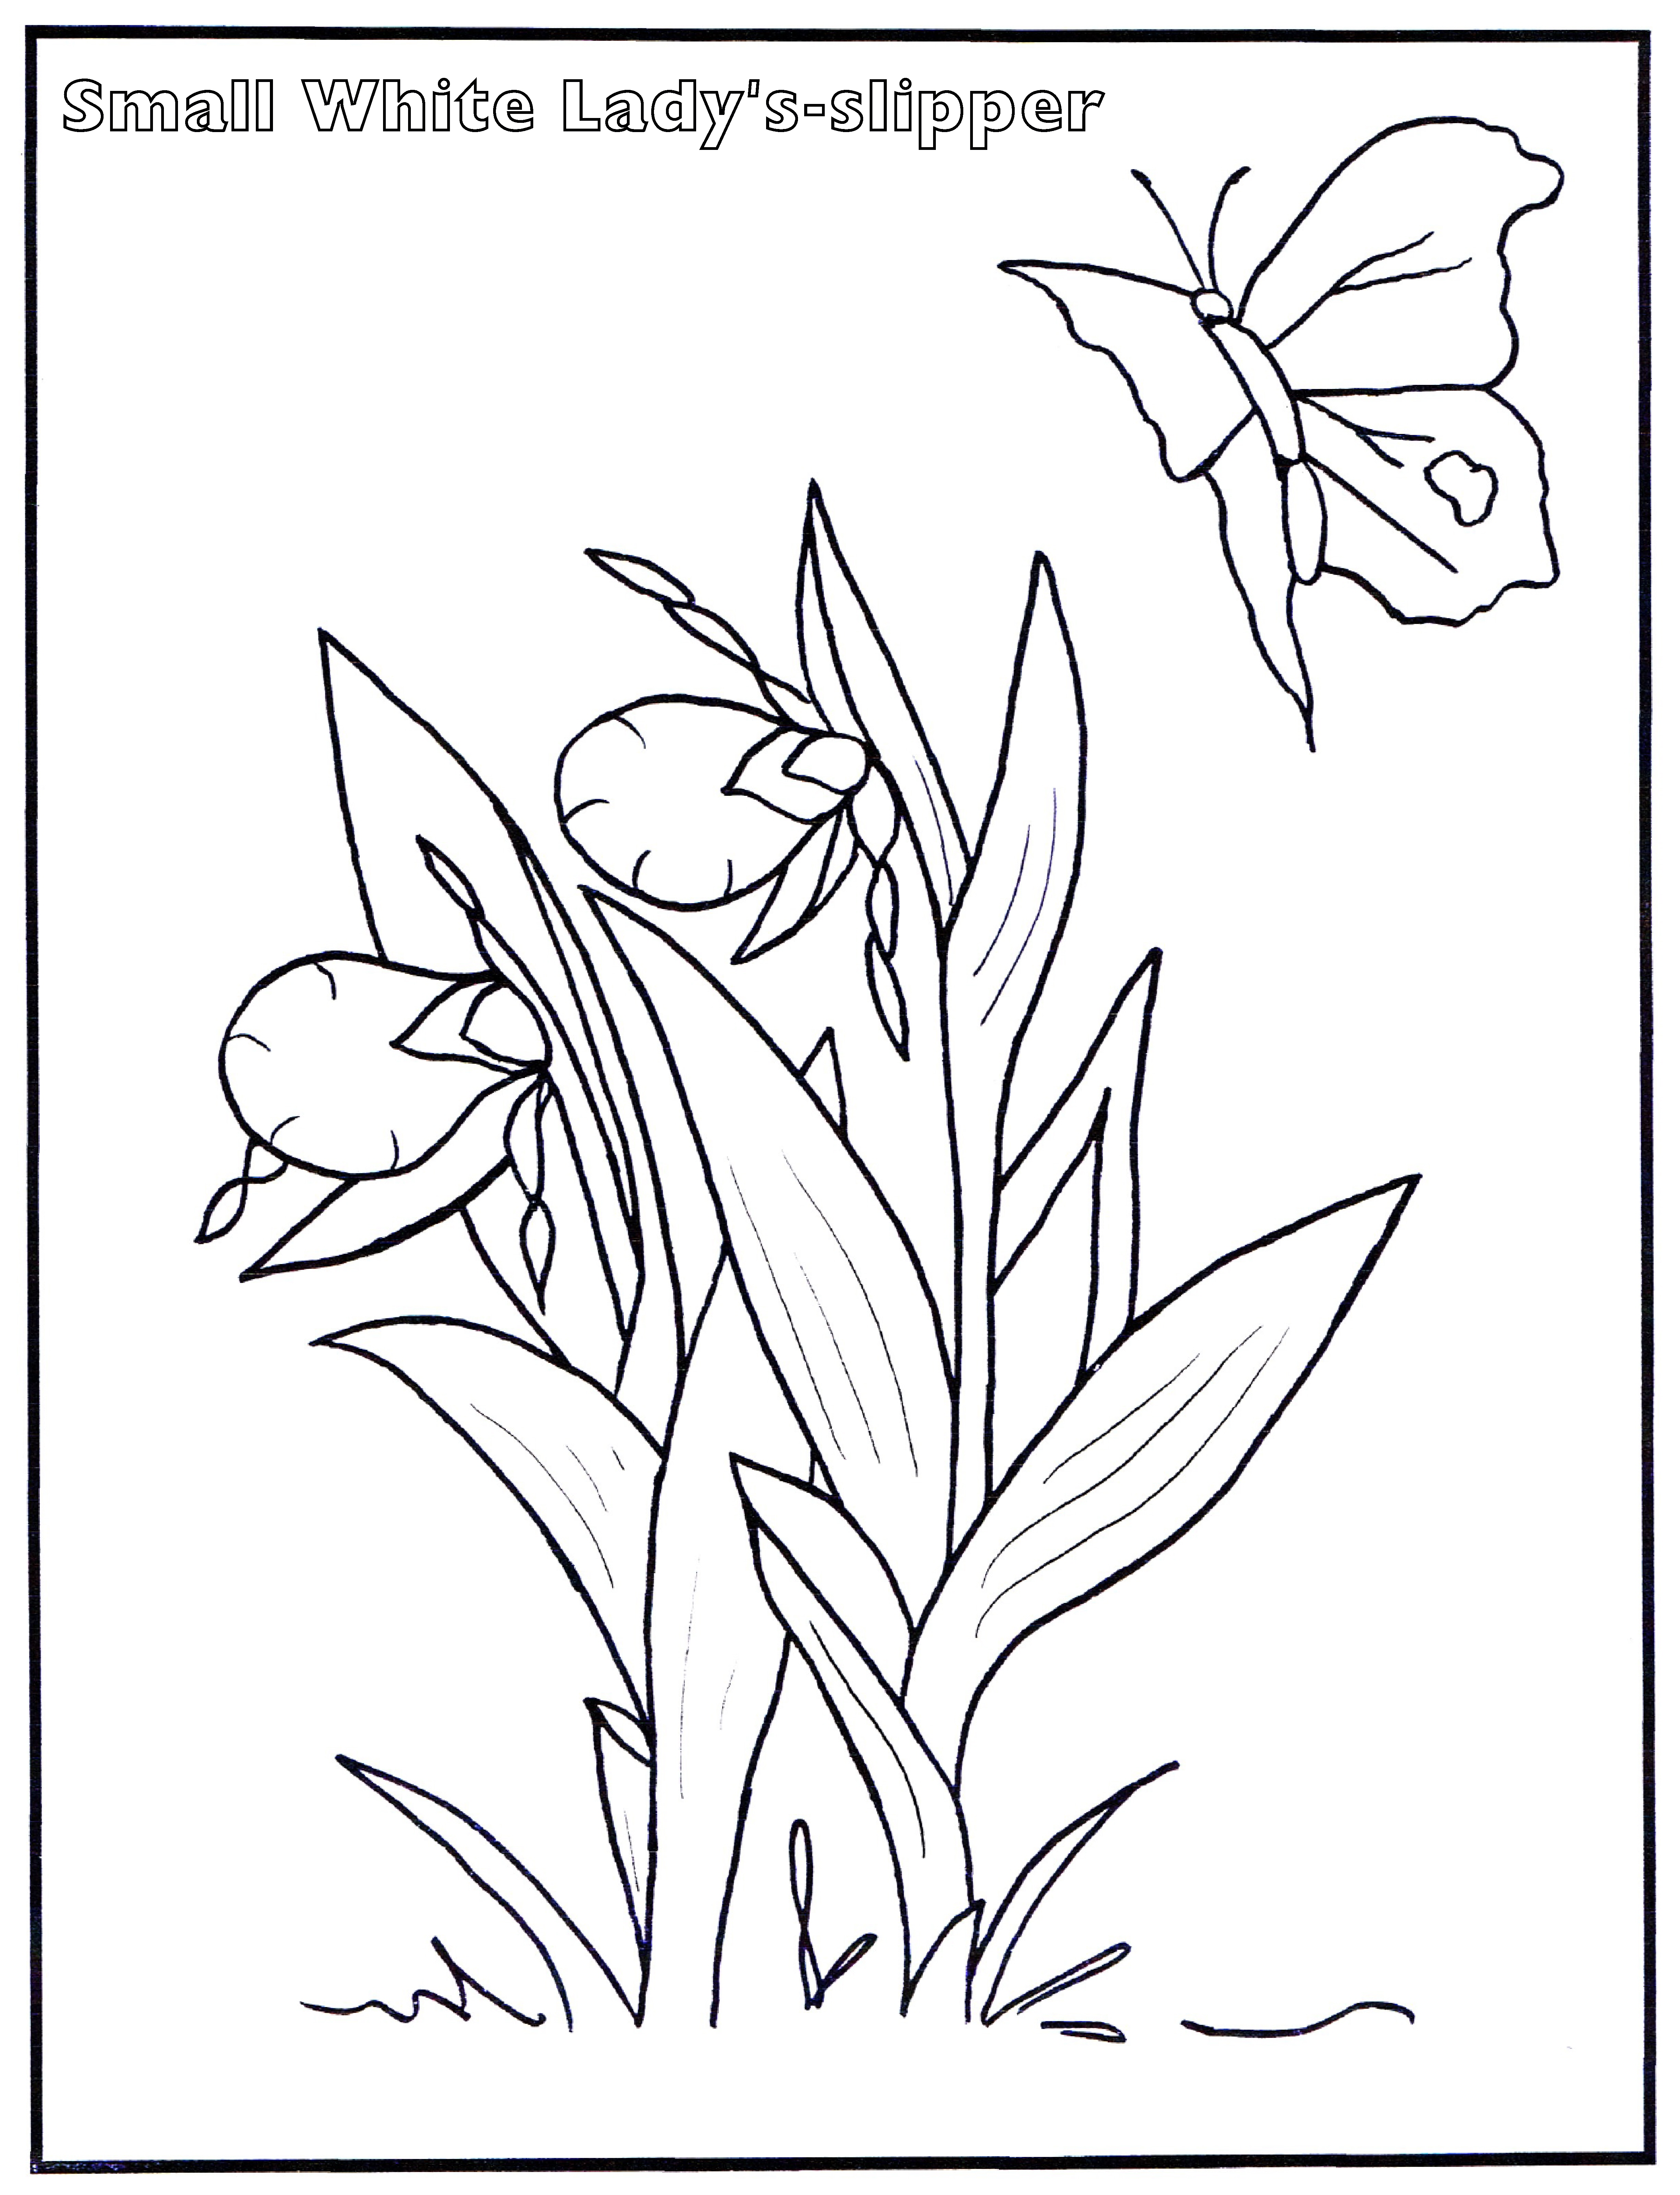 lady slipper flower coloring pages coloring pages